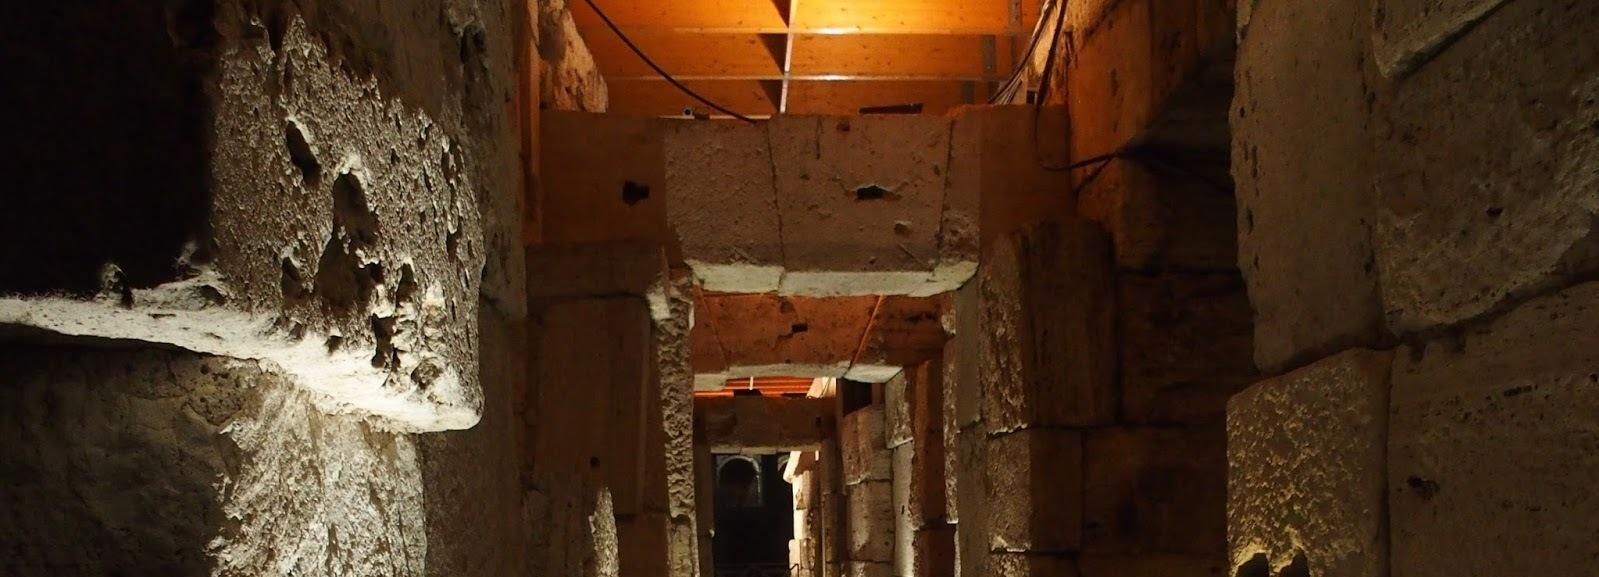 Small-Group Ancient Rome & Colosseum Underground Tour